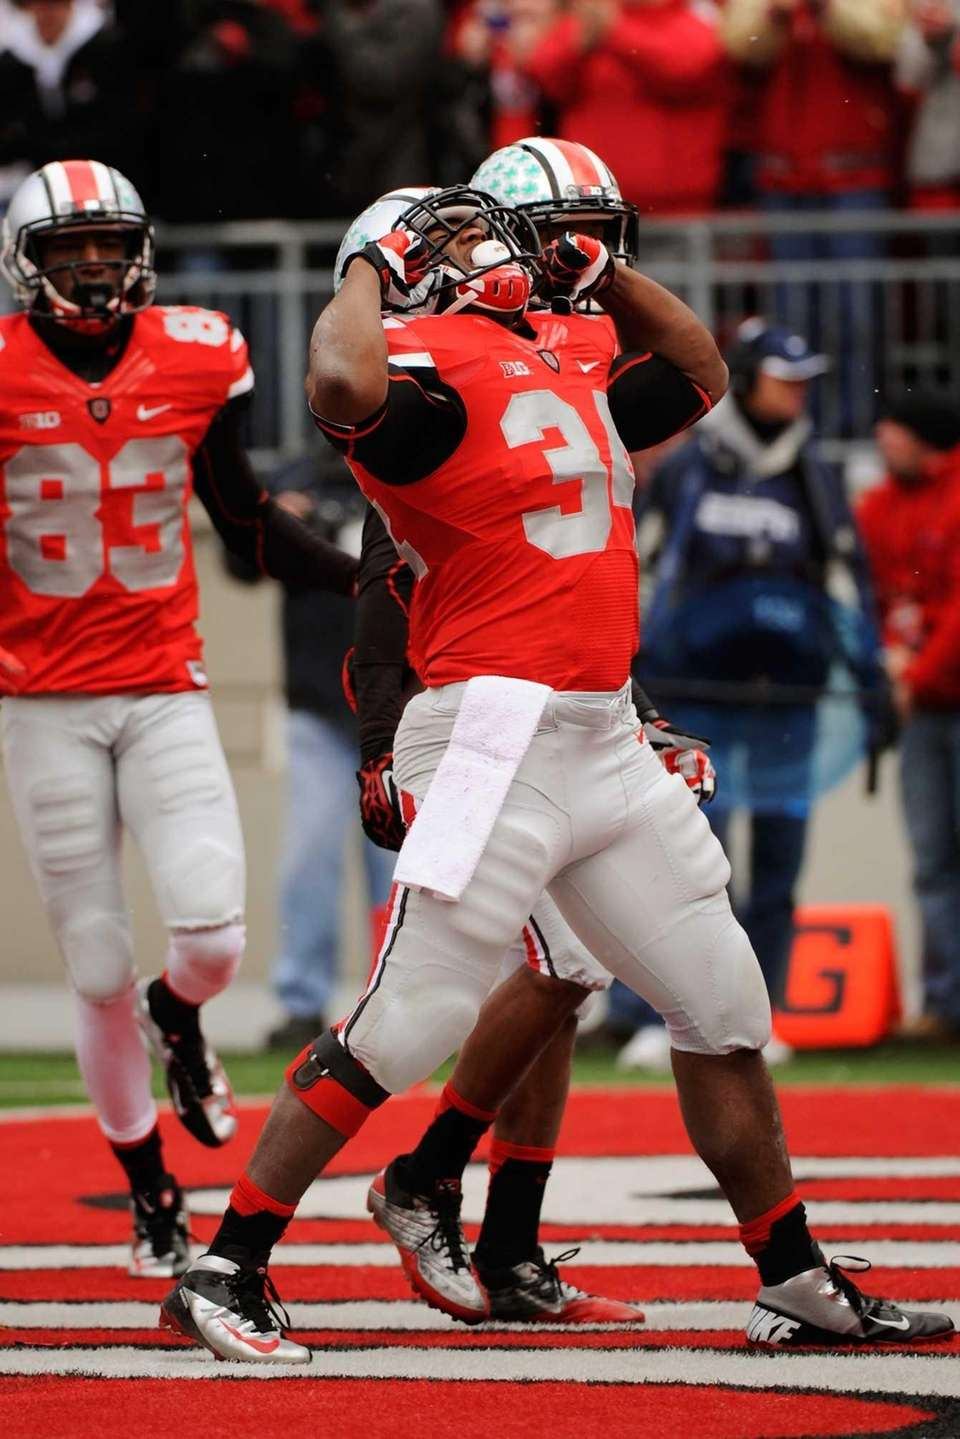 Carlos Hyde of the Ohio State Buckeyes celebrates